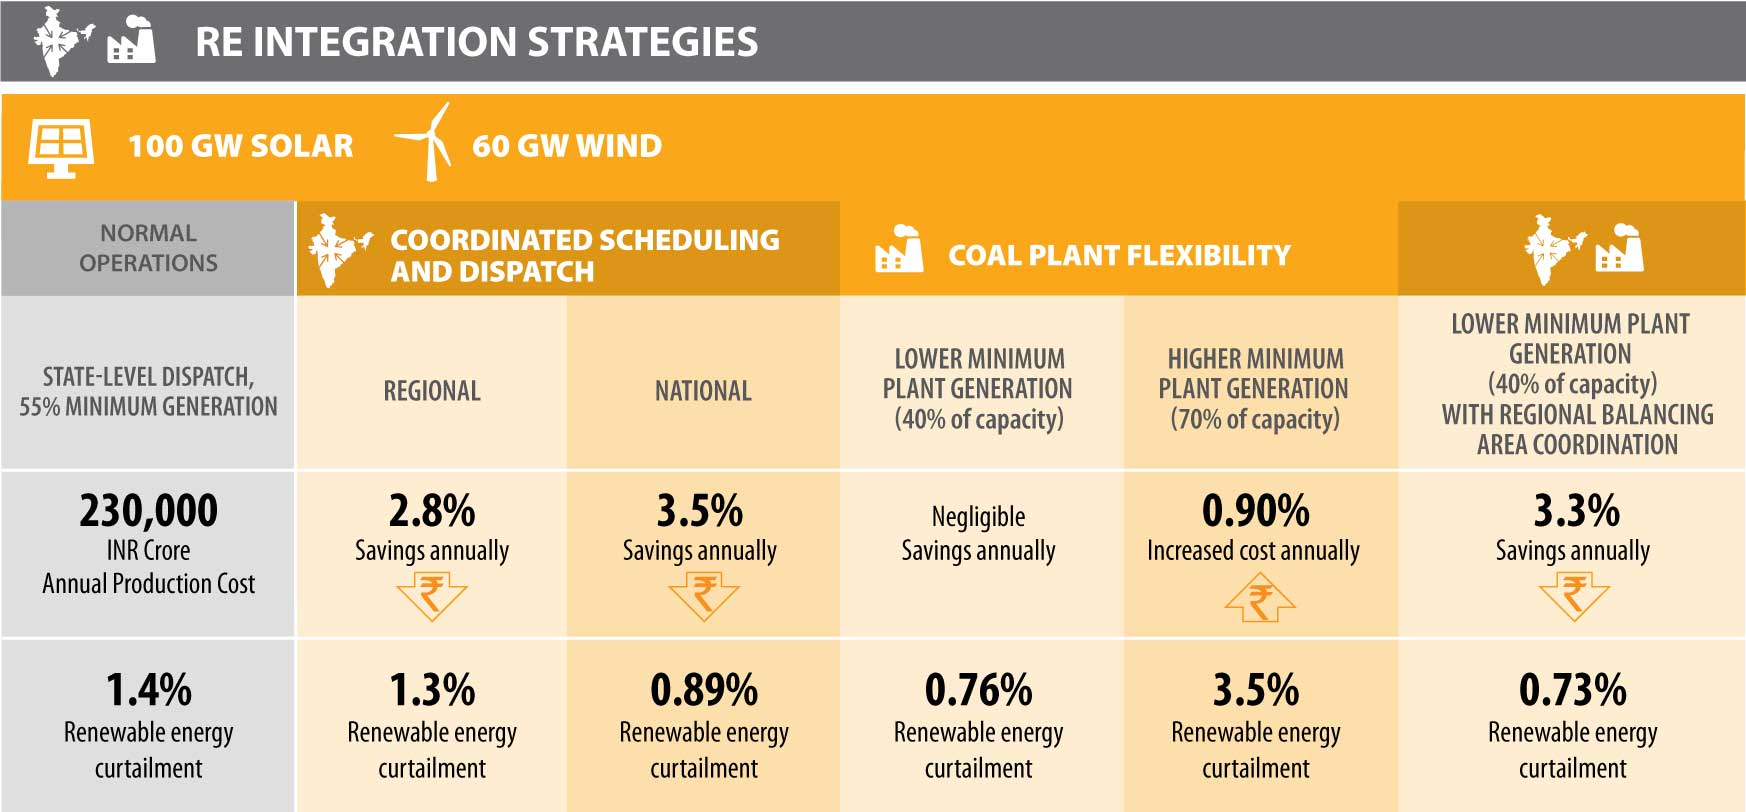 Table displaying the impacts of integration strategies for 100 GW of solar and 60 GW of wind under different scenarios. Normal operations, detailed in the first column, consist of state-level dispatch with 55% minimum generation; 230,000 INR crore annual production cost, and 1.4% renewable energy curtailment. Regional coordinated scheduling and dispatch, detailed in the second column, results in 2.8% savings annually and 1.3% renewable energy curtailment. National coordinated scheduling and dispatch, detailed in the third column, results in 3.5% savings annually and 0.89% renewable energy curtailment. Lower minimum coal plant generation—at 40% of capacity—detailed in the fourth column results in negligible savings annually and 0.76% renewable energy curtailment. Higher minimum coal plant generation—at 70% of capacity—detailed in the fifth column results in 0.90% increased cost annually and 3.5% renewable energy curtailment. Finally, lower minimum coal plant generation (40% of capacity) with regional balancing area coordination results in 3.3% savings annually and 0.73% renewable energy curtailment.